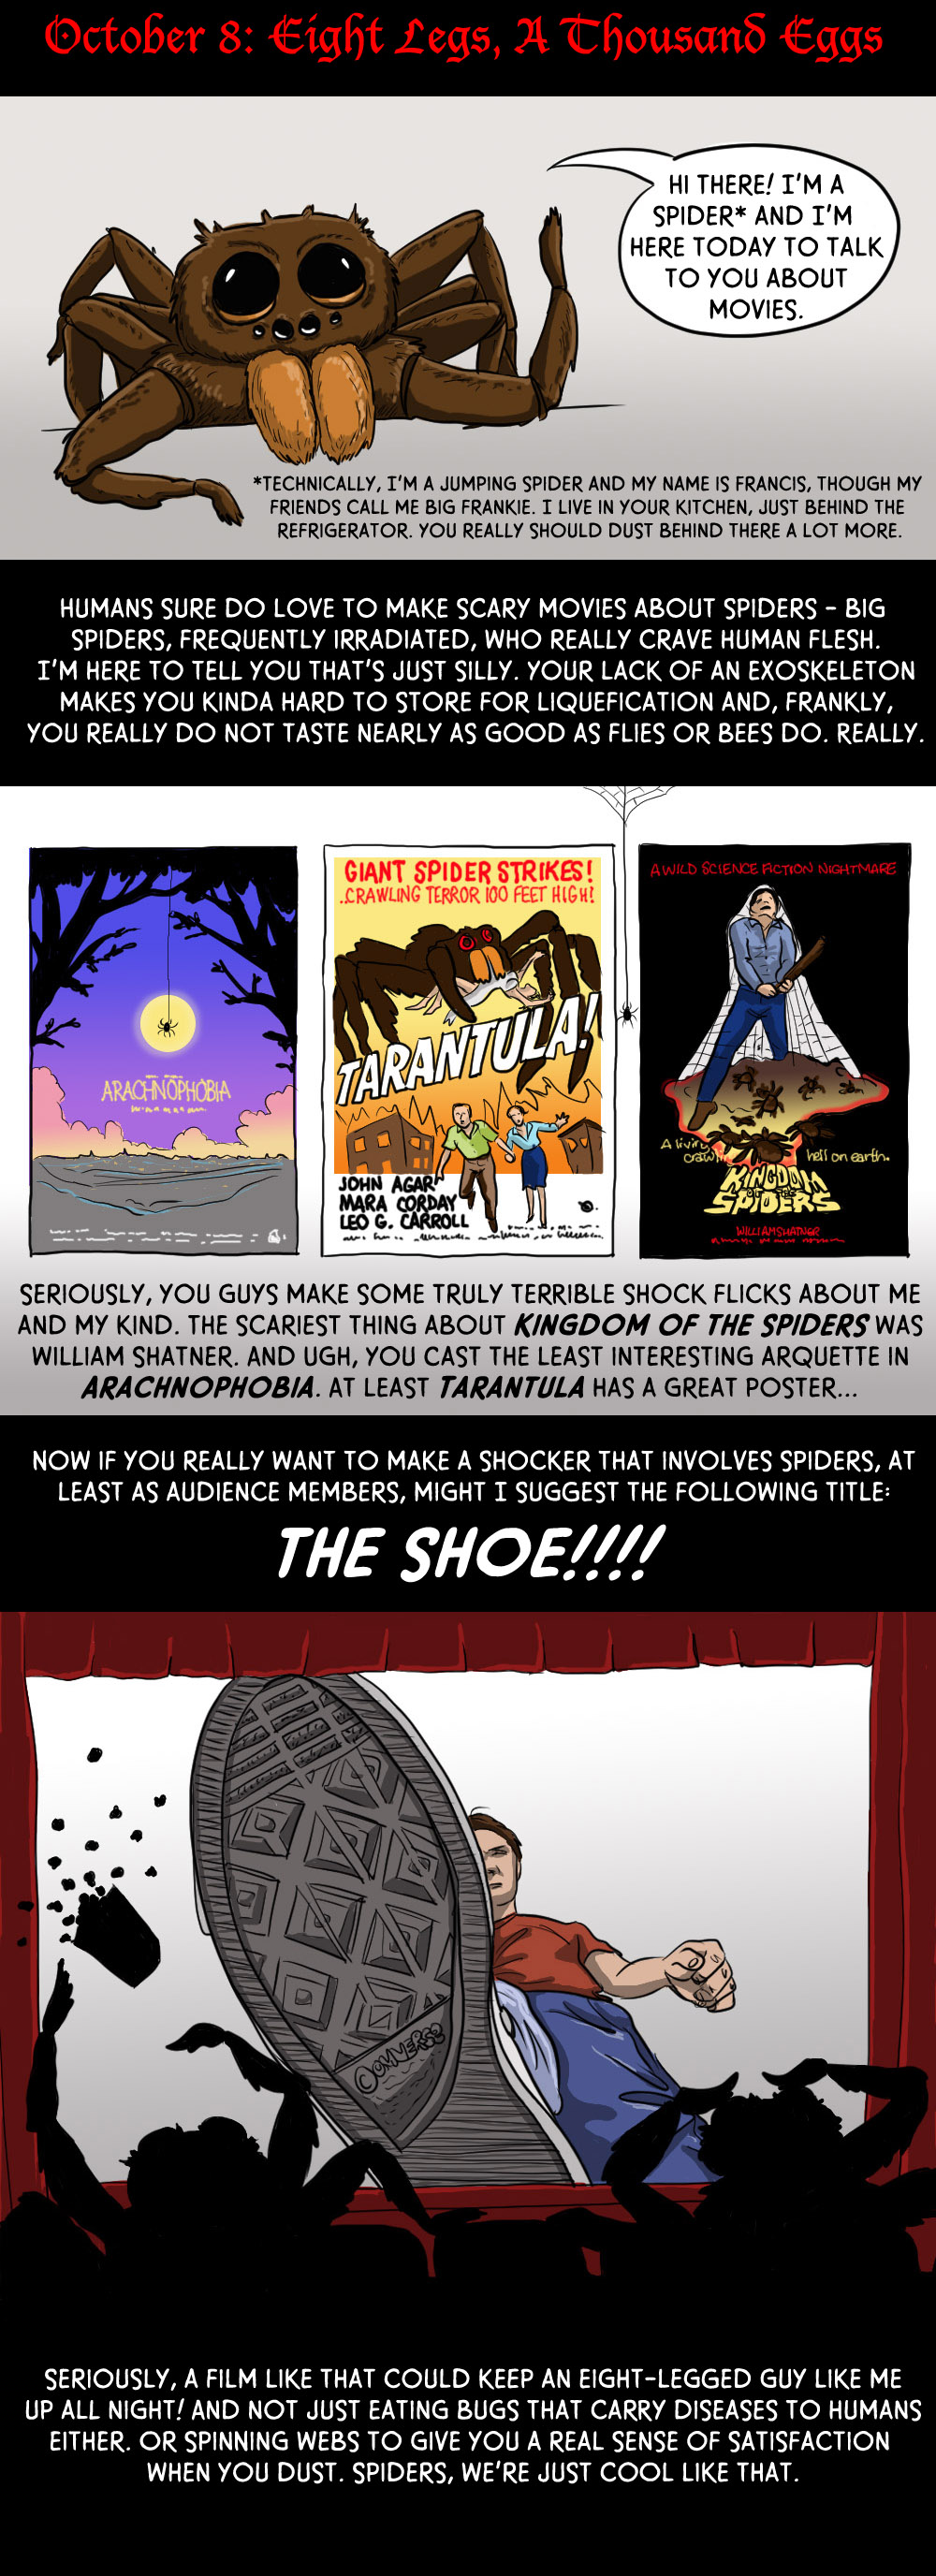 October 8: Eight Legs, A Thousand Eggs and One Comic by an Actual Spider